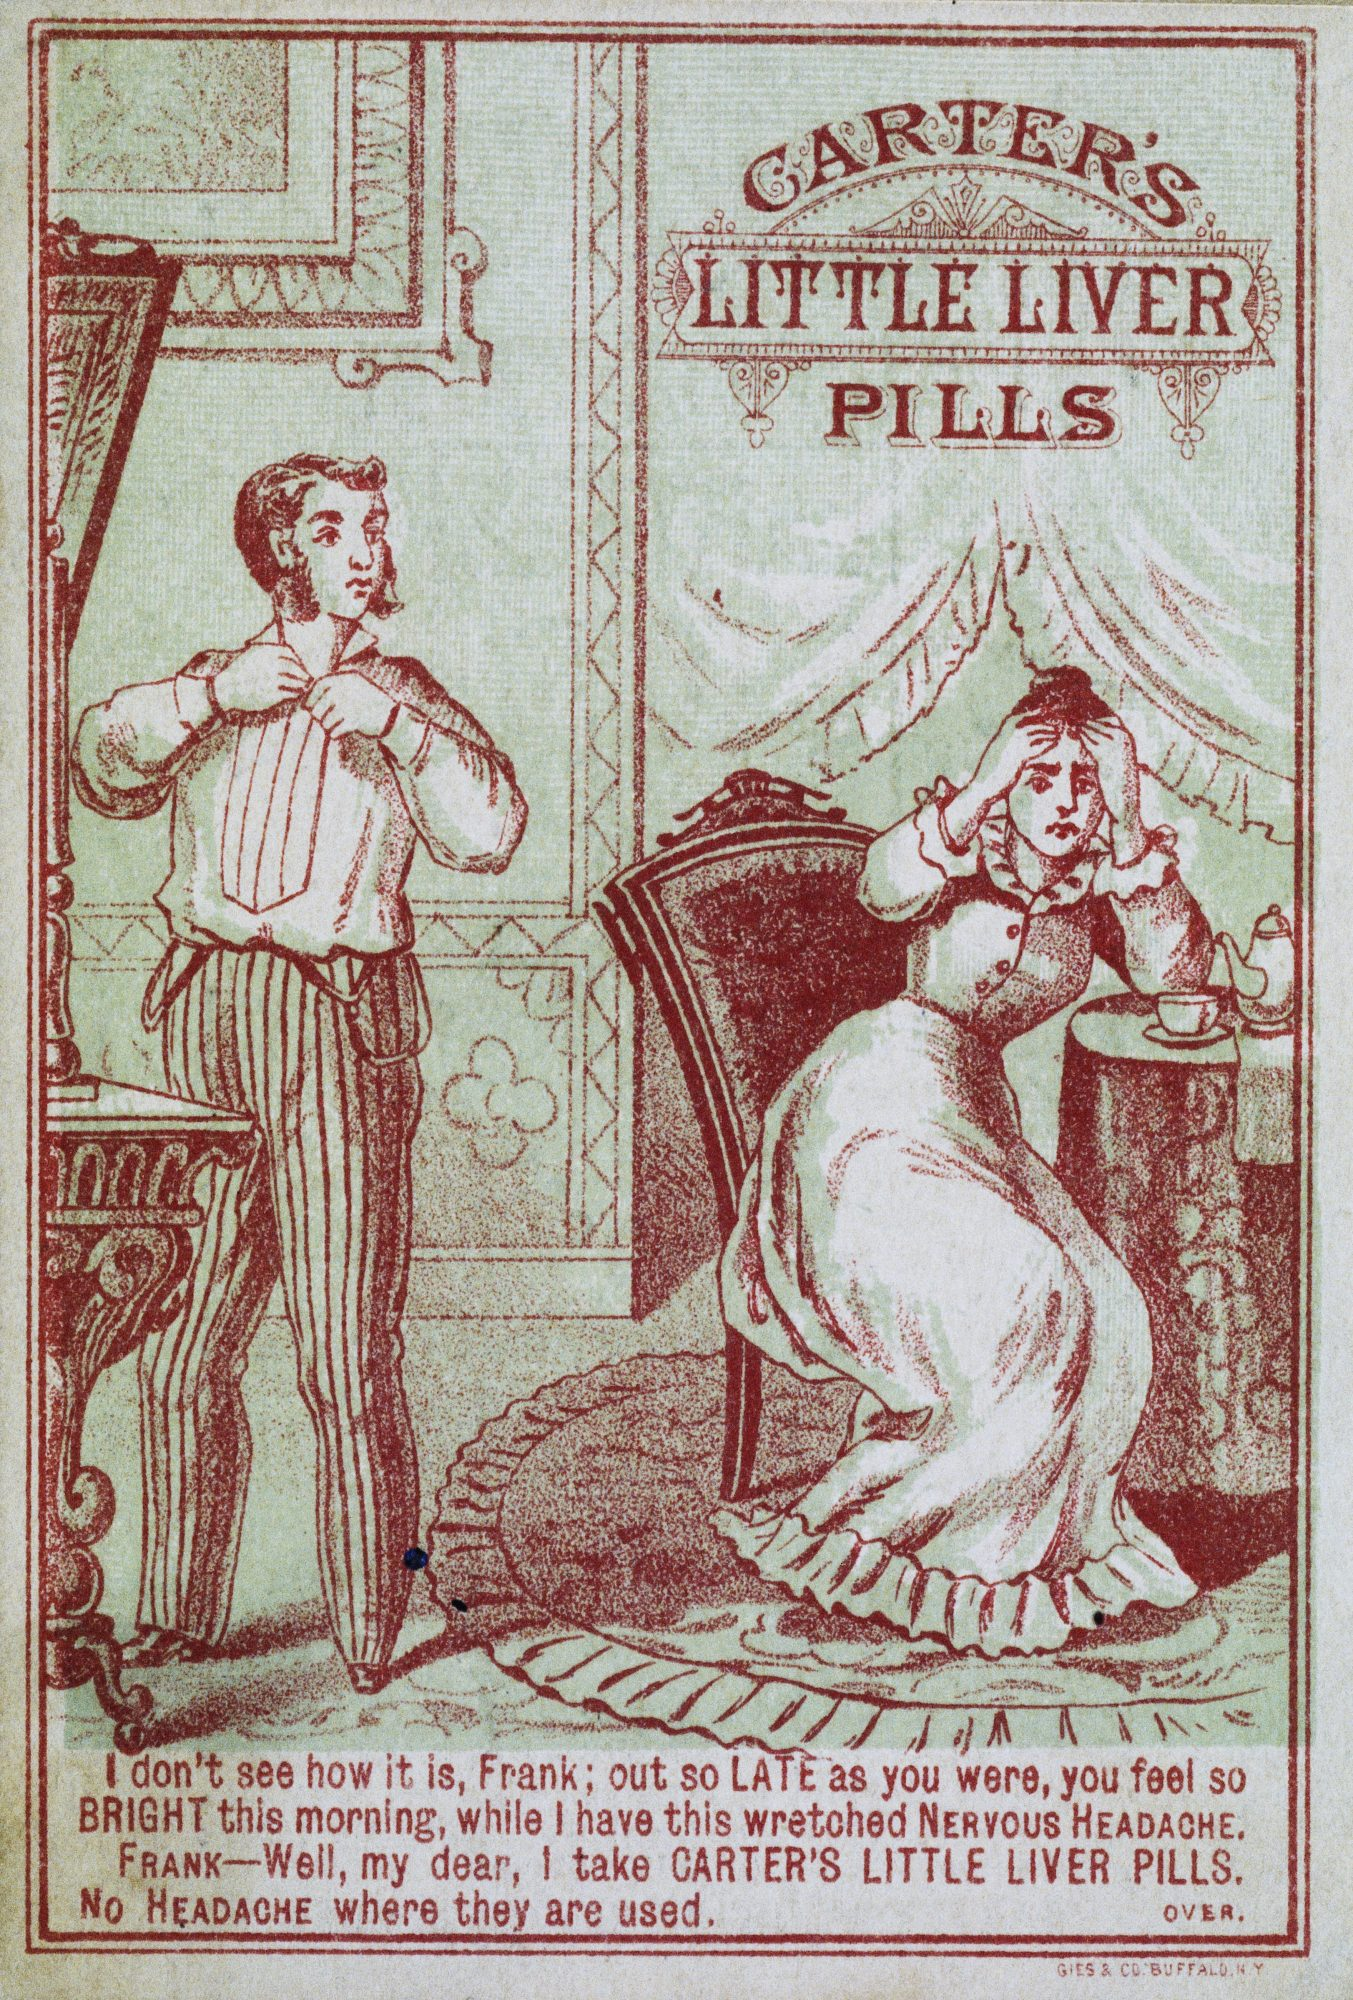 Advertisement for Carter's Little Liver Pills, circa 1900